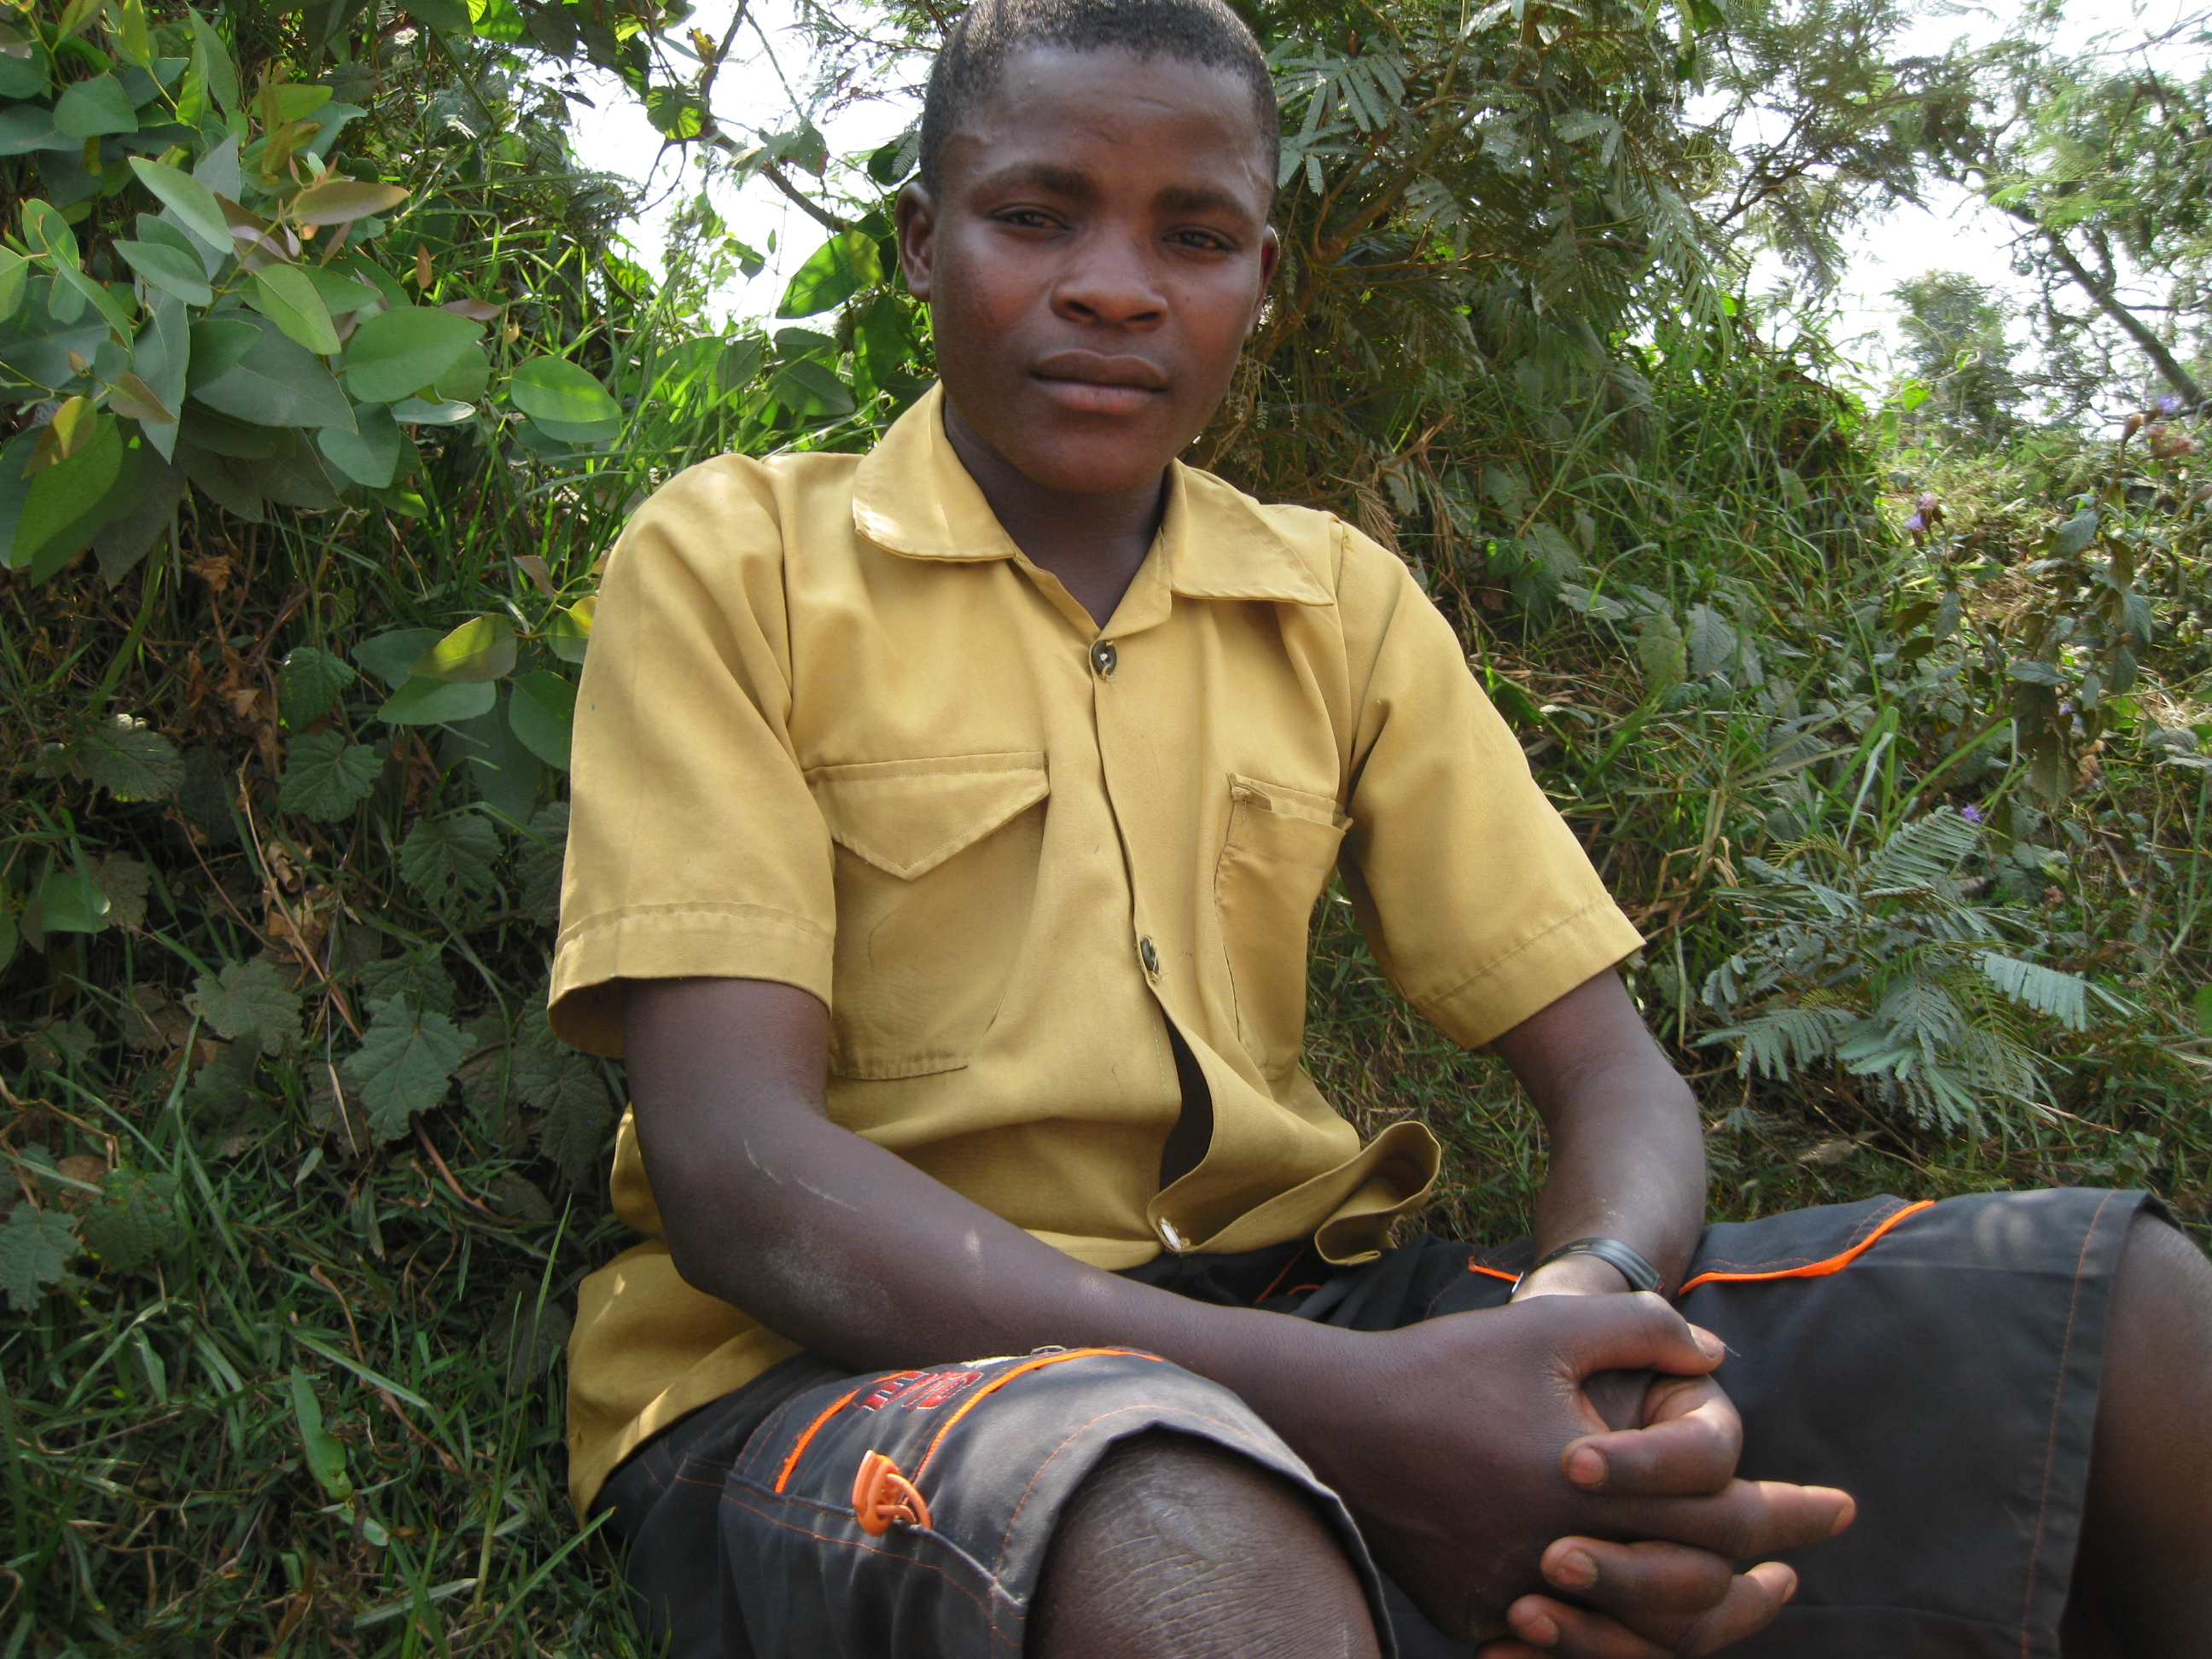 Jean-Lambert Rukeratabaro, 16, a fourth year primary school pupil in the area of Byumba located north of the capital, Kigali.